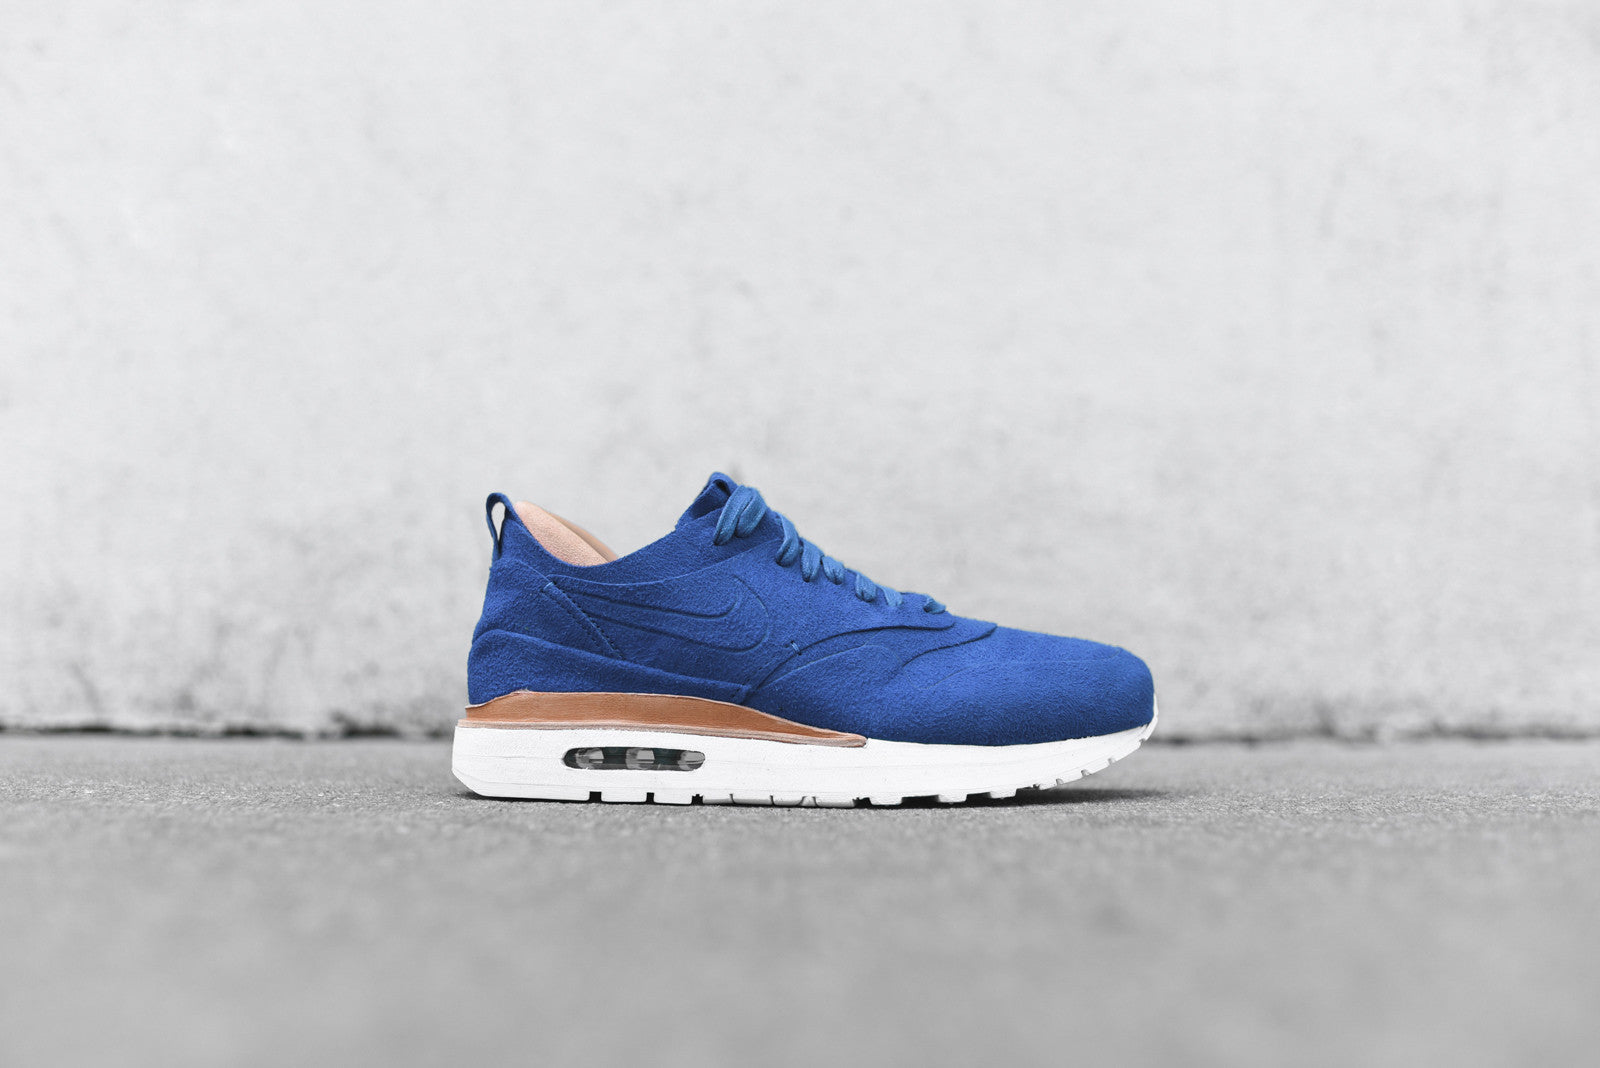 Nike WMNS Air Max 1 Royal - Game Royal